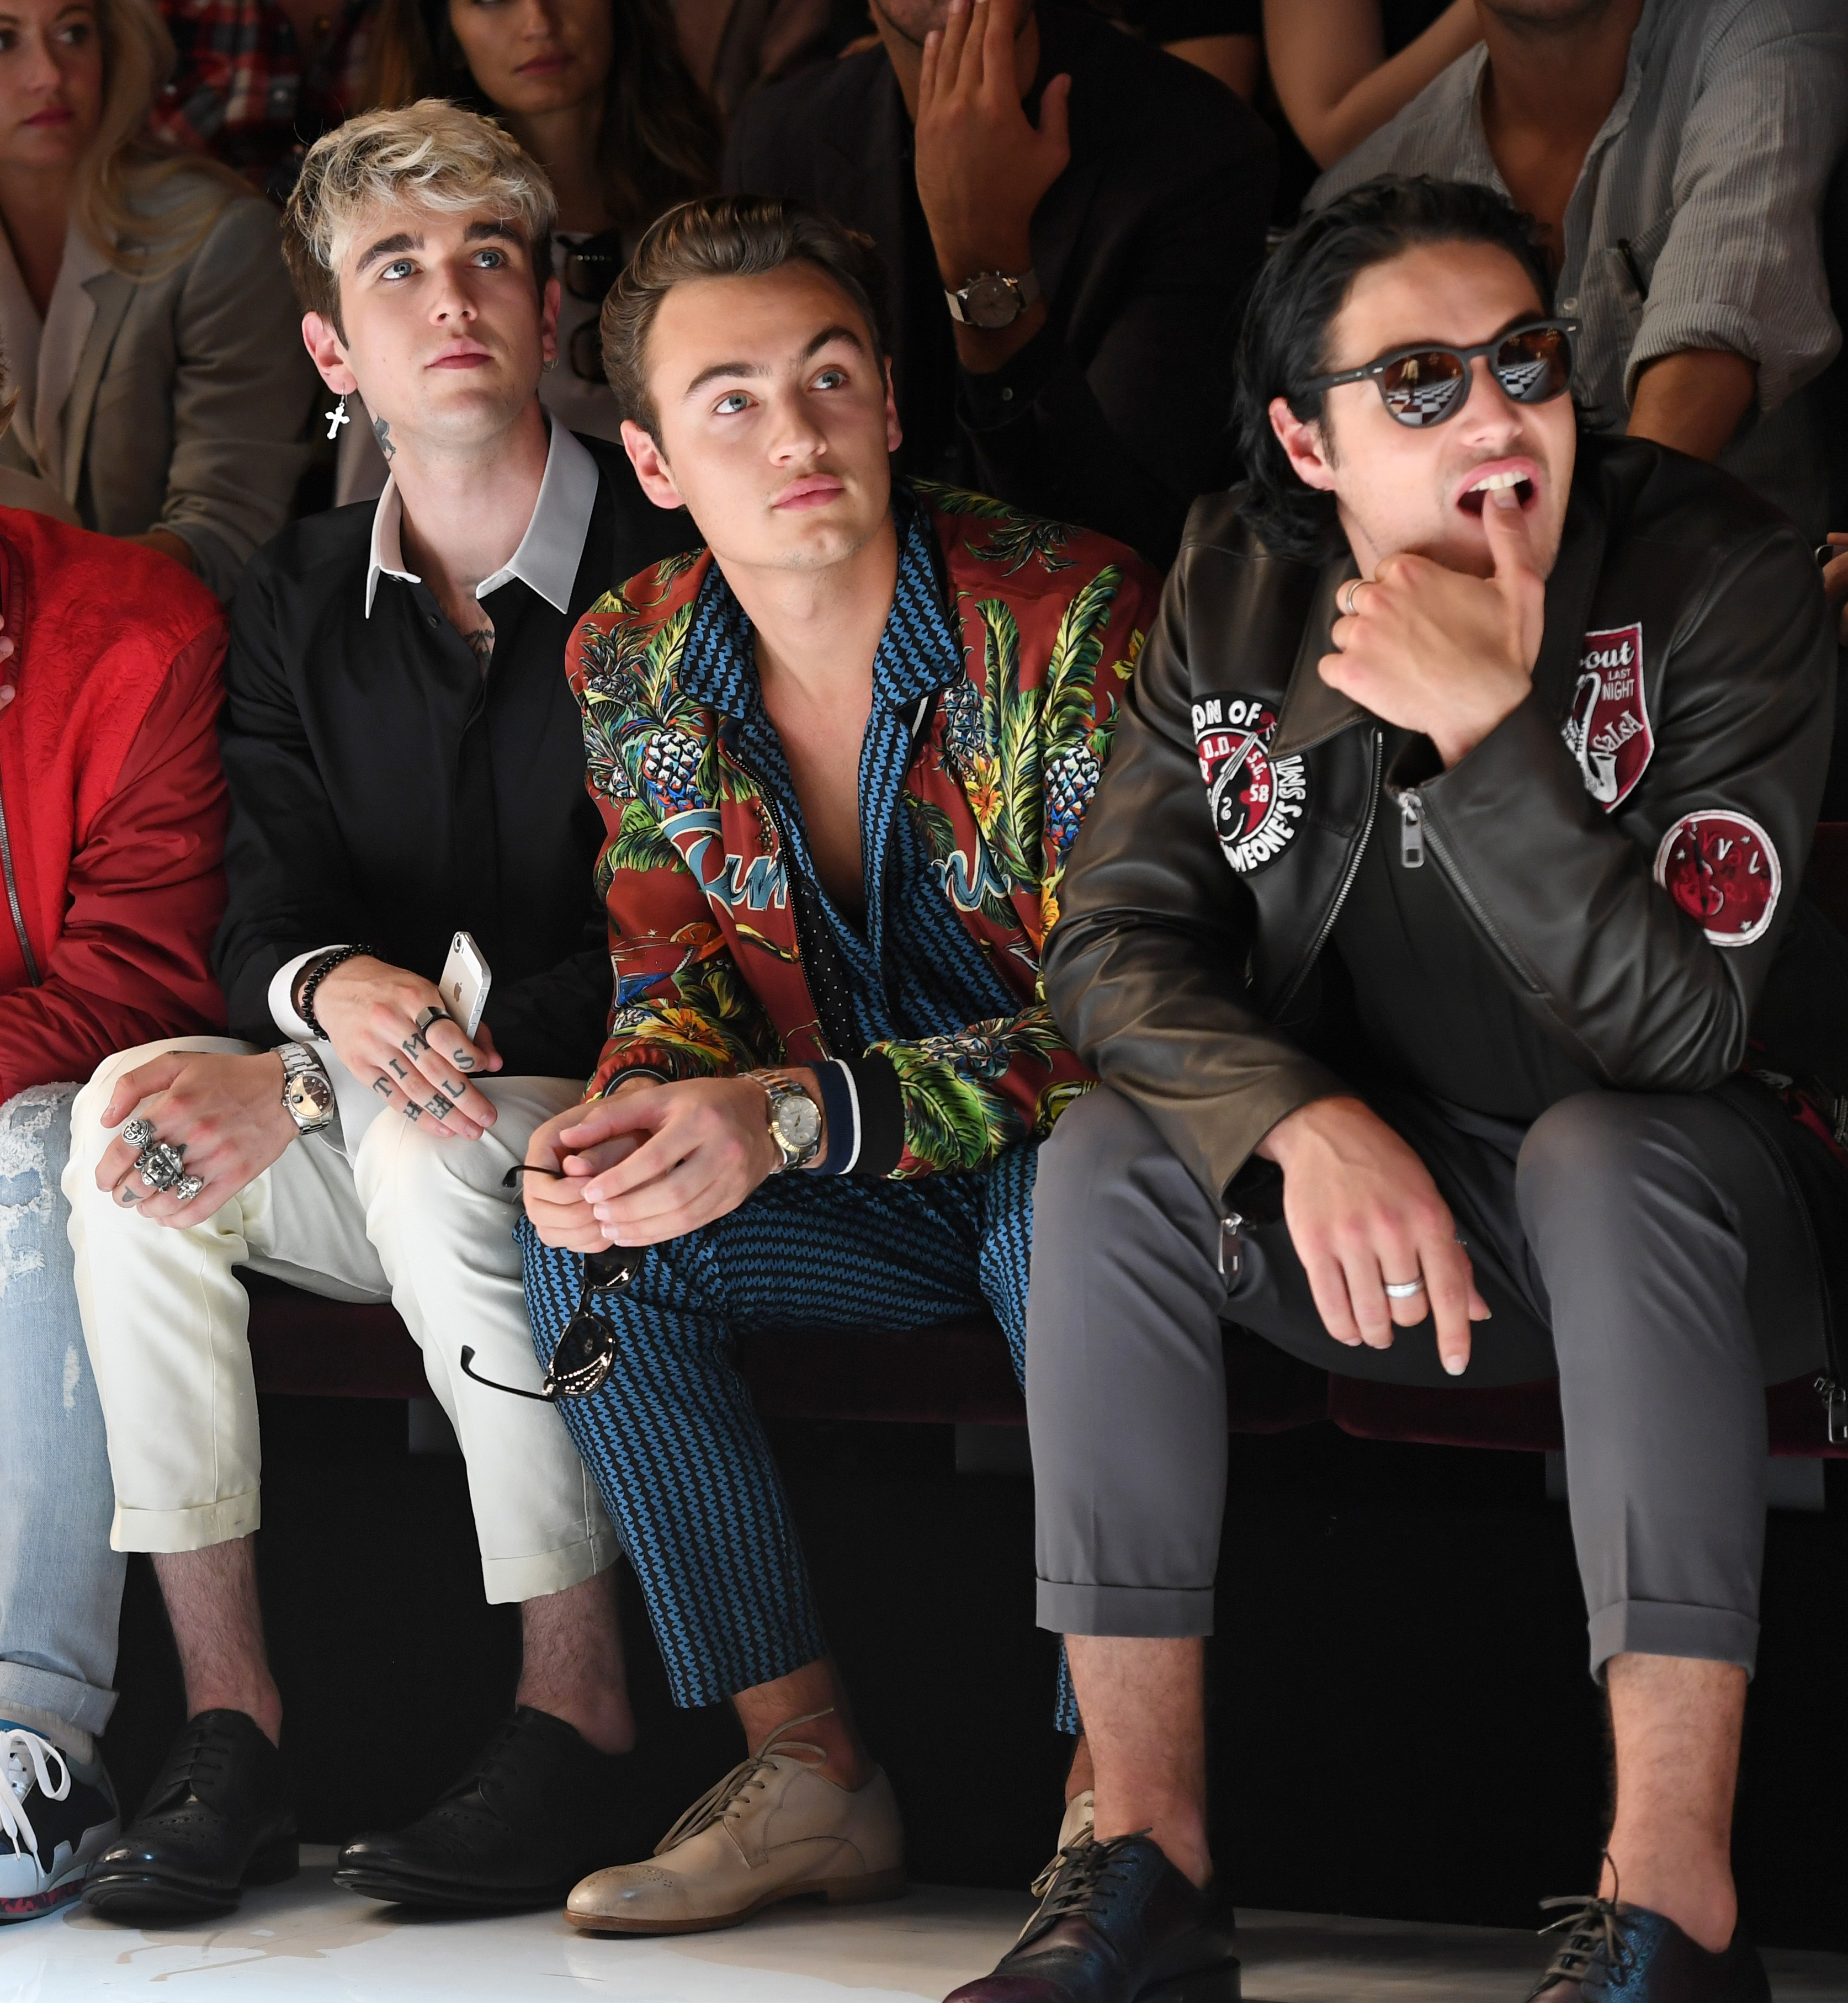 Move over Georgia May Jagger, Gigi Hadid and Kendall Jenner, this Milan Men's Fashion Week it's all about the celebrity offspring guys. From Cindy Crawford's son to Bob Dylan's grandson, meet the next generation of boys who are taking over the front row and runway.